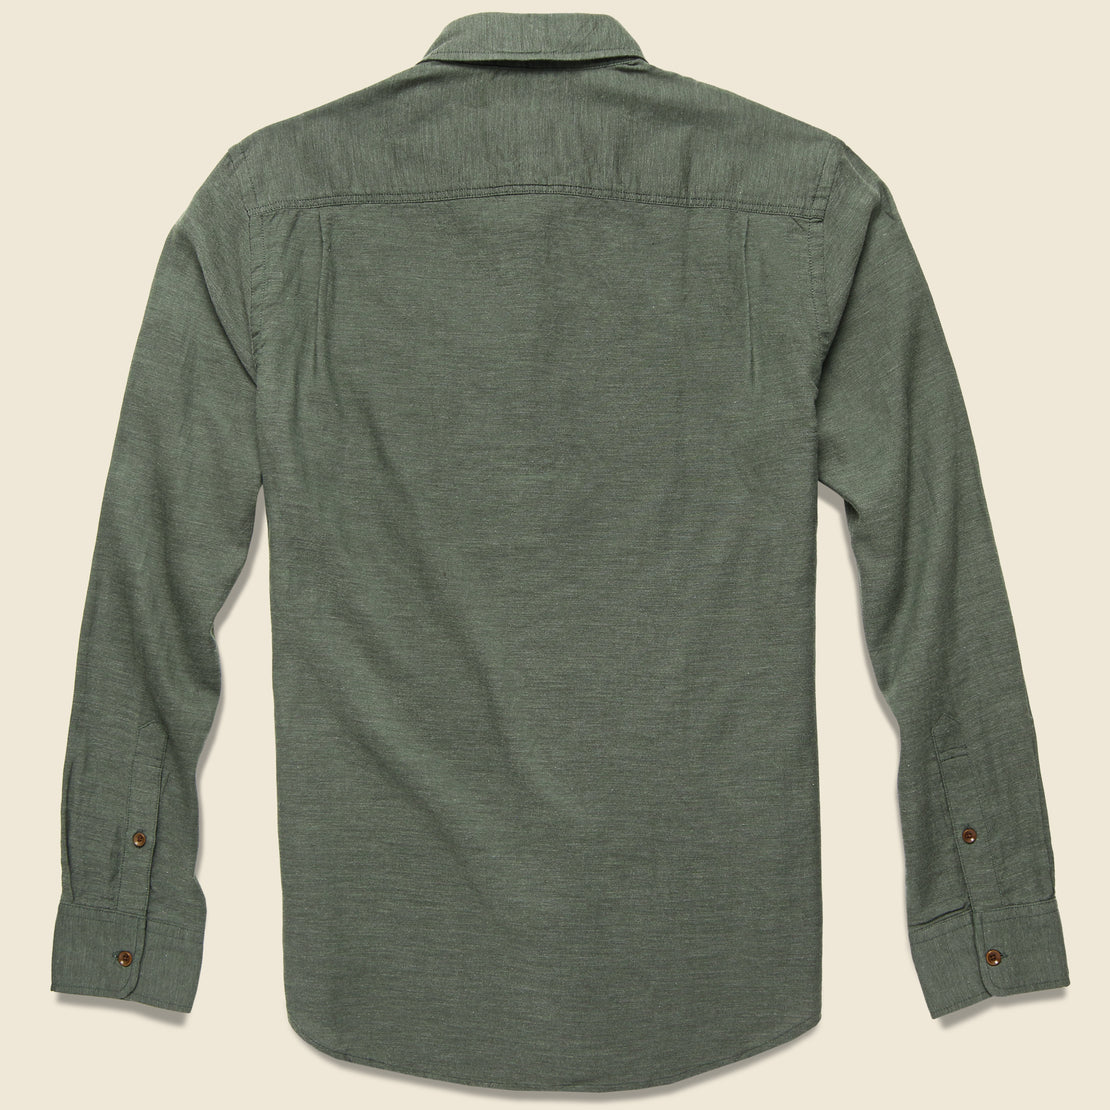 Melange Oxford Shirt - Spruce